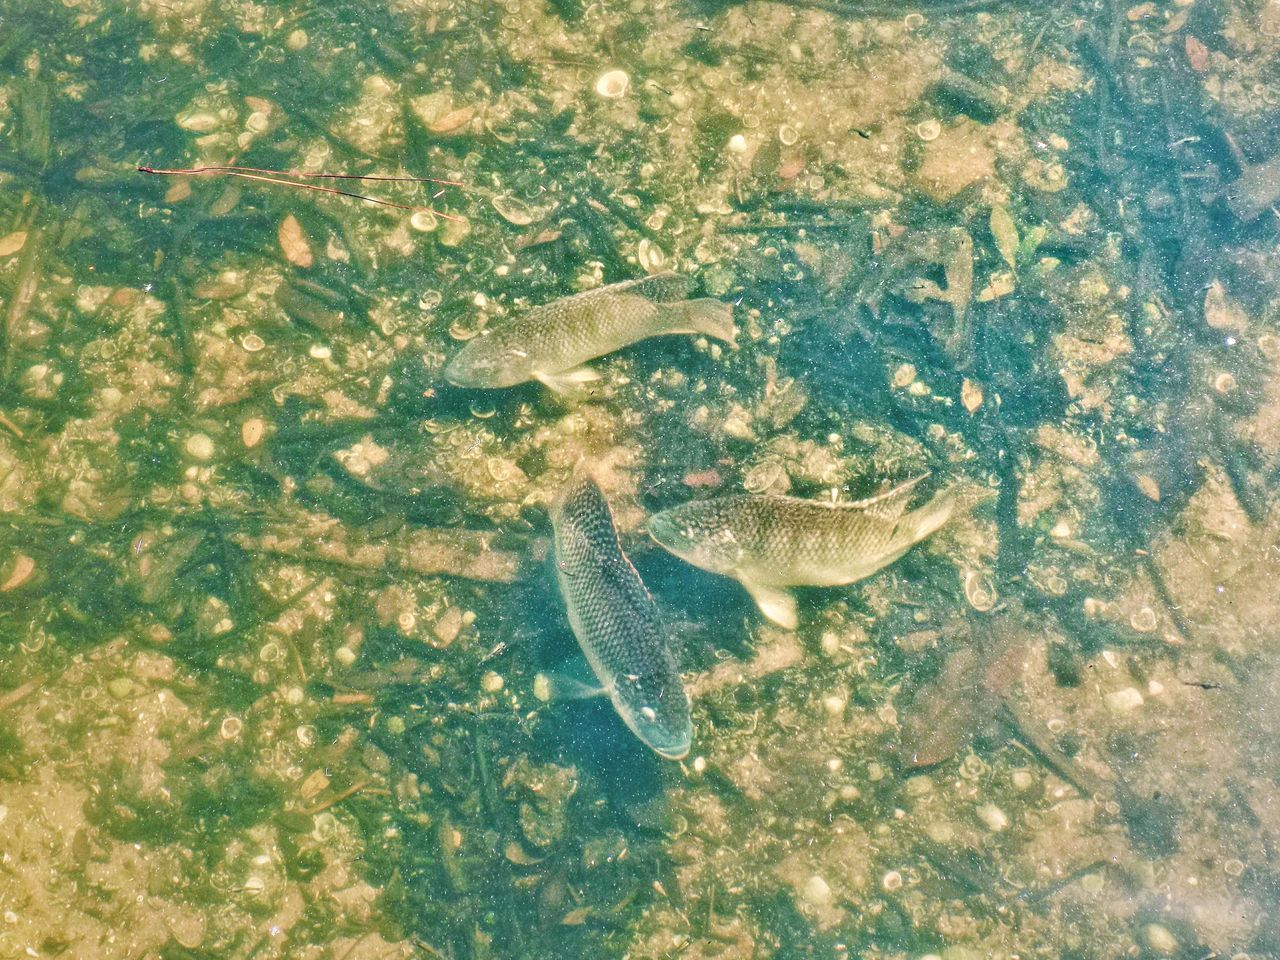 HIGH ANGLE VIEW OF FISH IN SEA